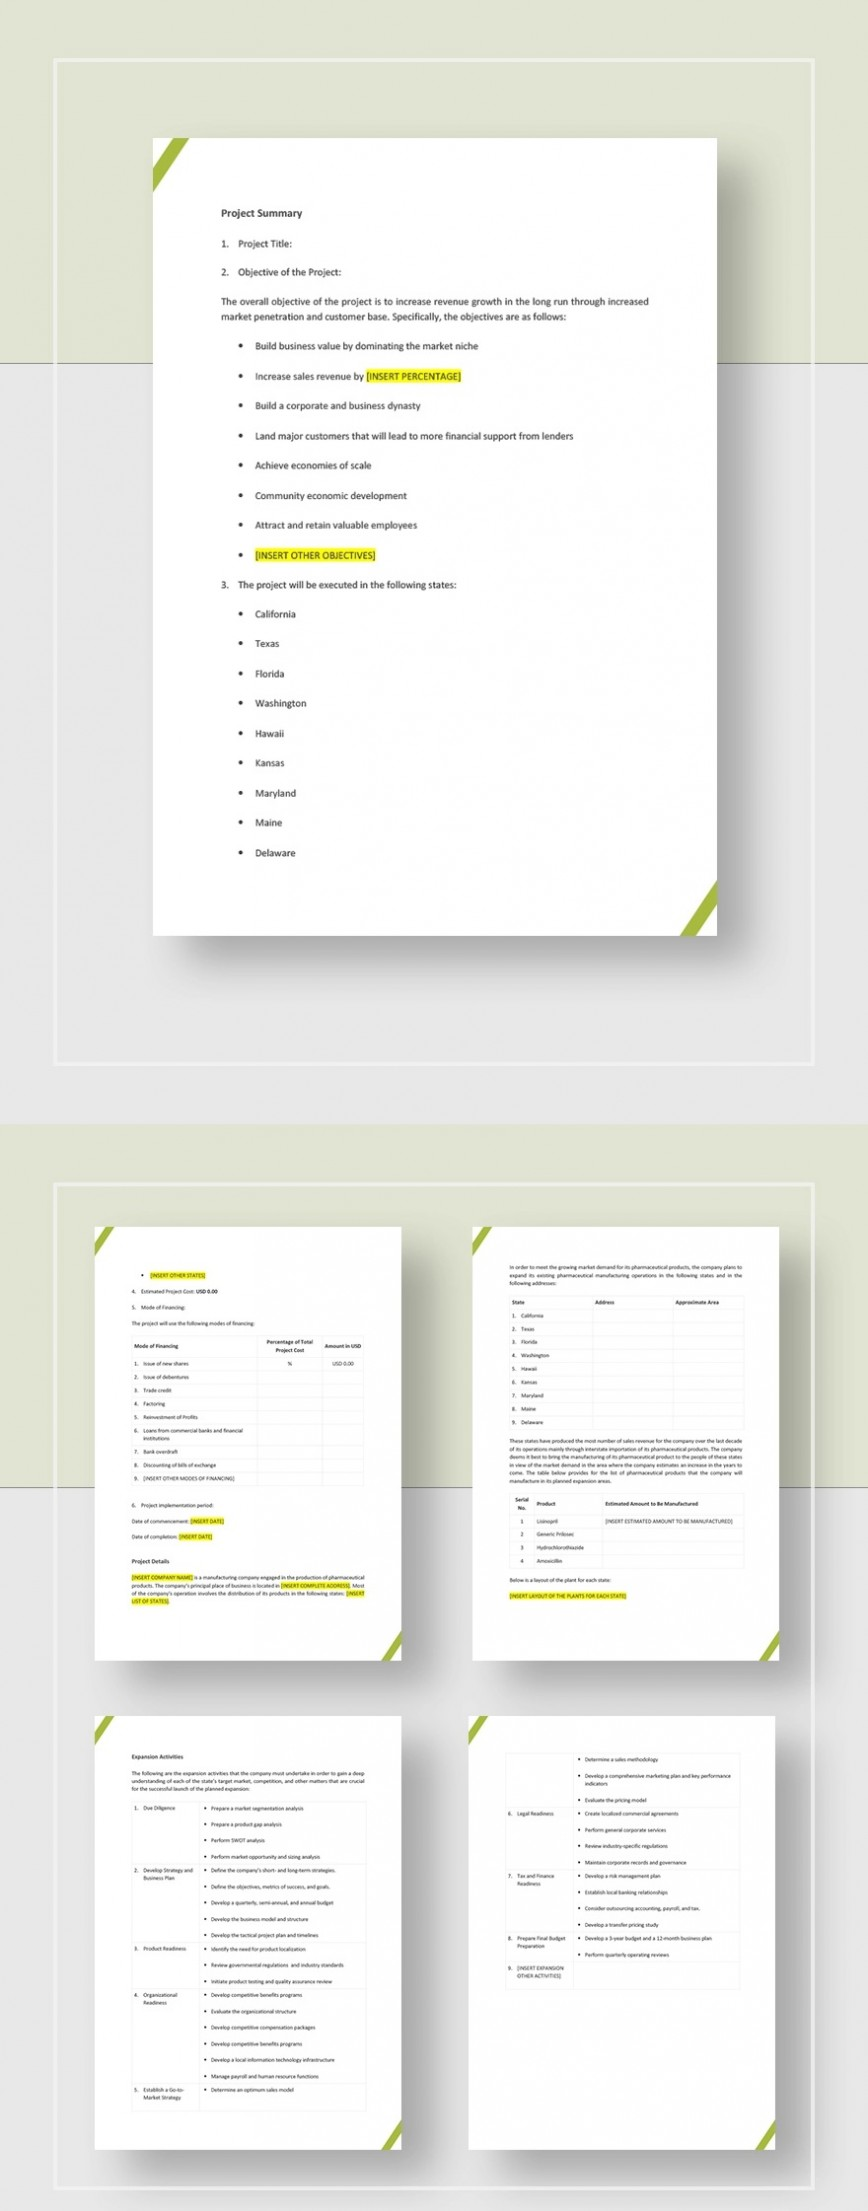 Development Project Proposal Template Jpg  Web Design & Powerpoint Sample868